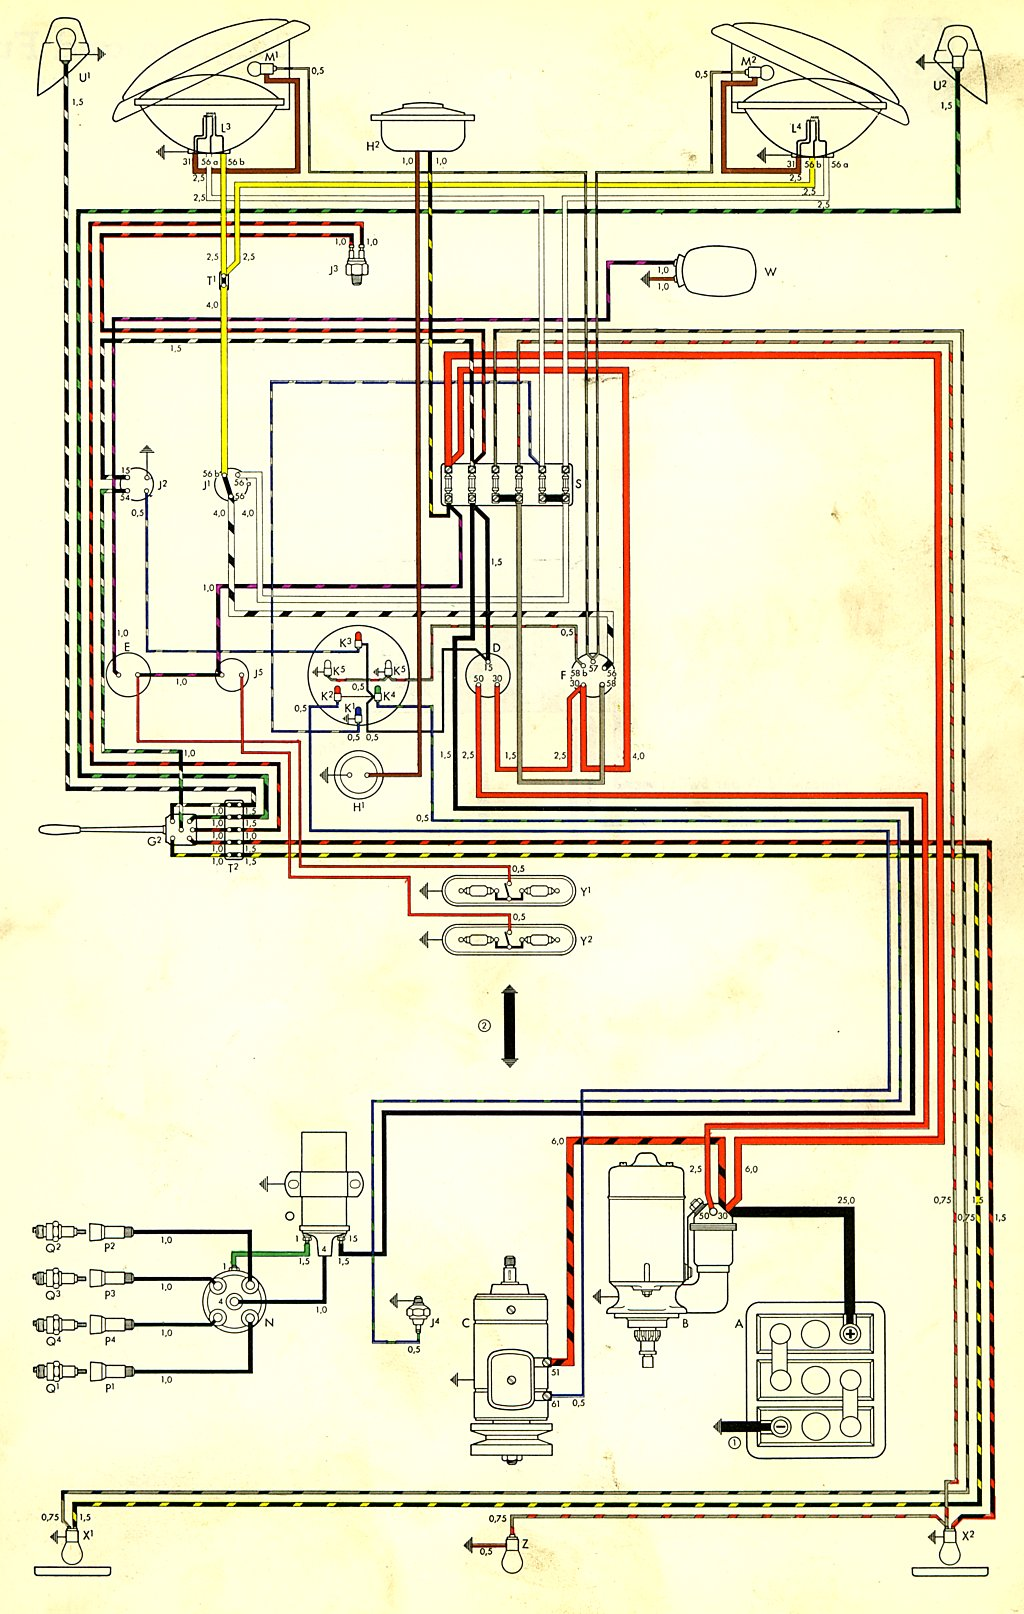 thesamba com type 2 wiring diagrams rh thesamba com Doorbell Wiring RJ45 Wiring -Diagram